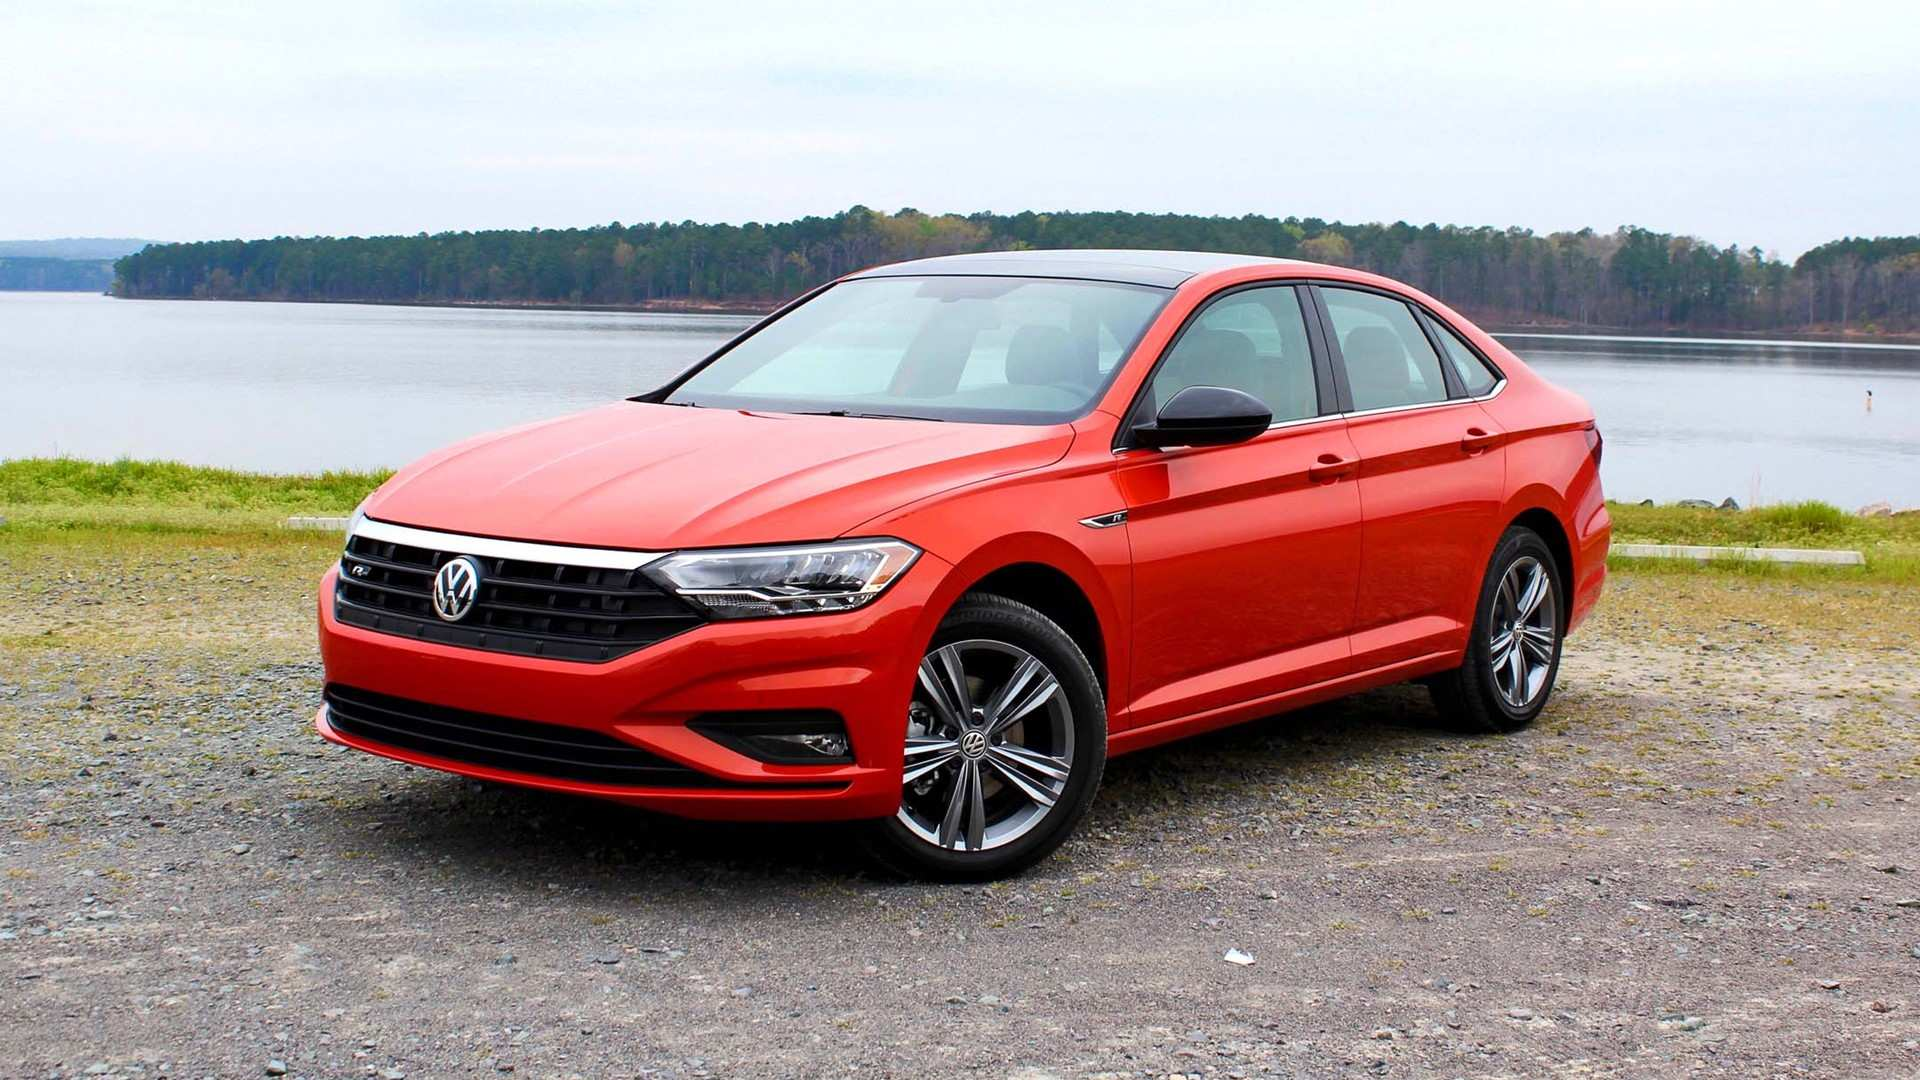 89 All New The 2019 Volkswagen Jetta 1 4T R Line Exterior And Interior Review Exterior and Interior with The 2019 Volkswagen Jetta 1 4T R Line Exterior And Interior Review